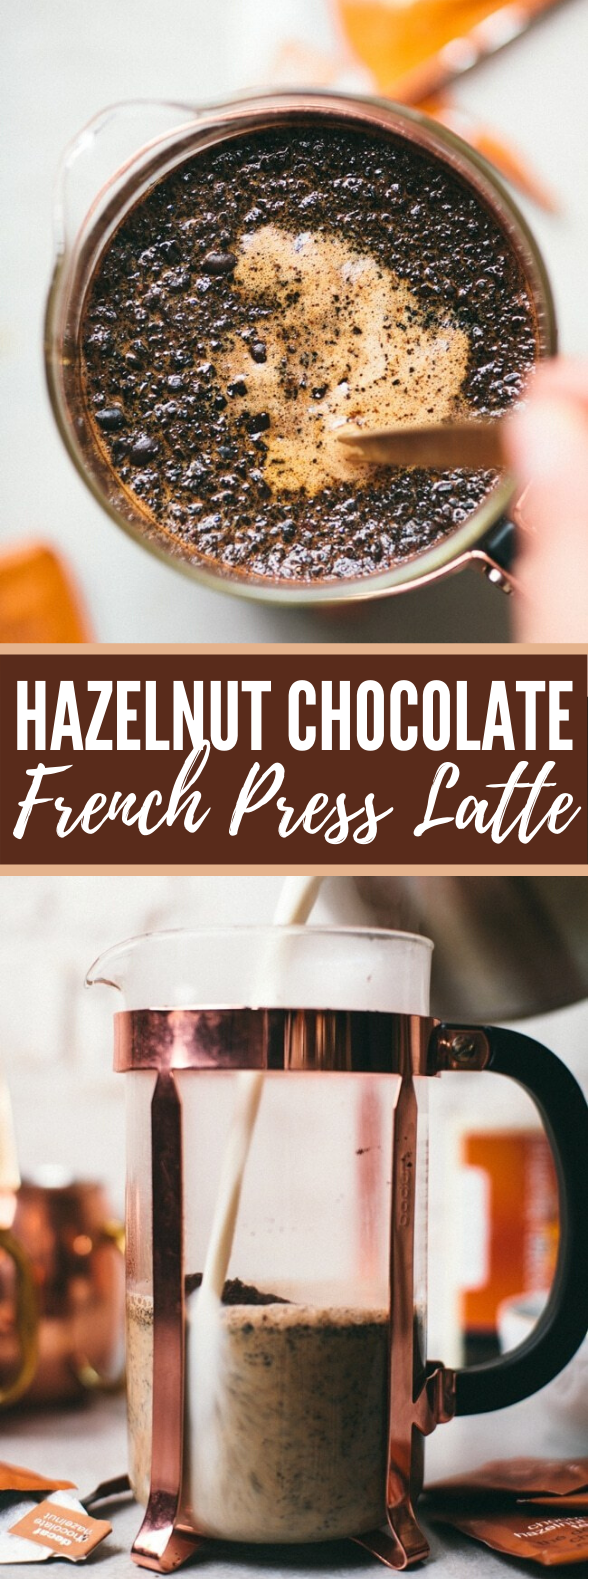 Hazelnut Chocolate French Press Latte #drinks #coffee